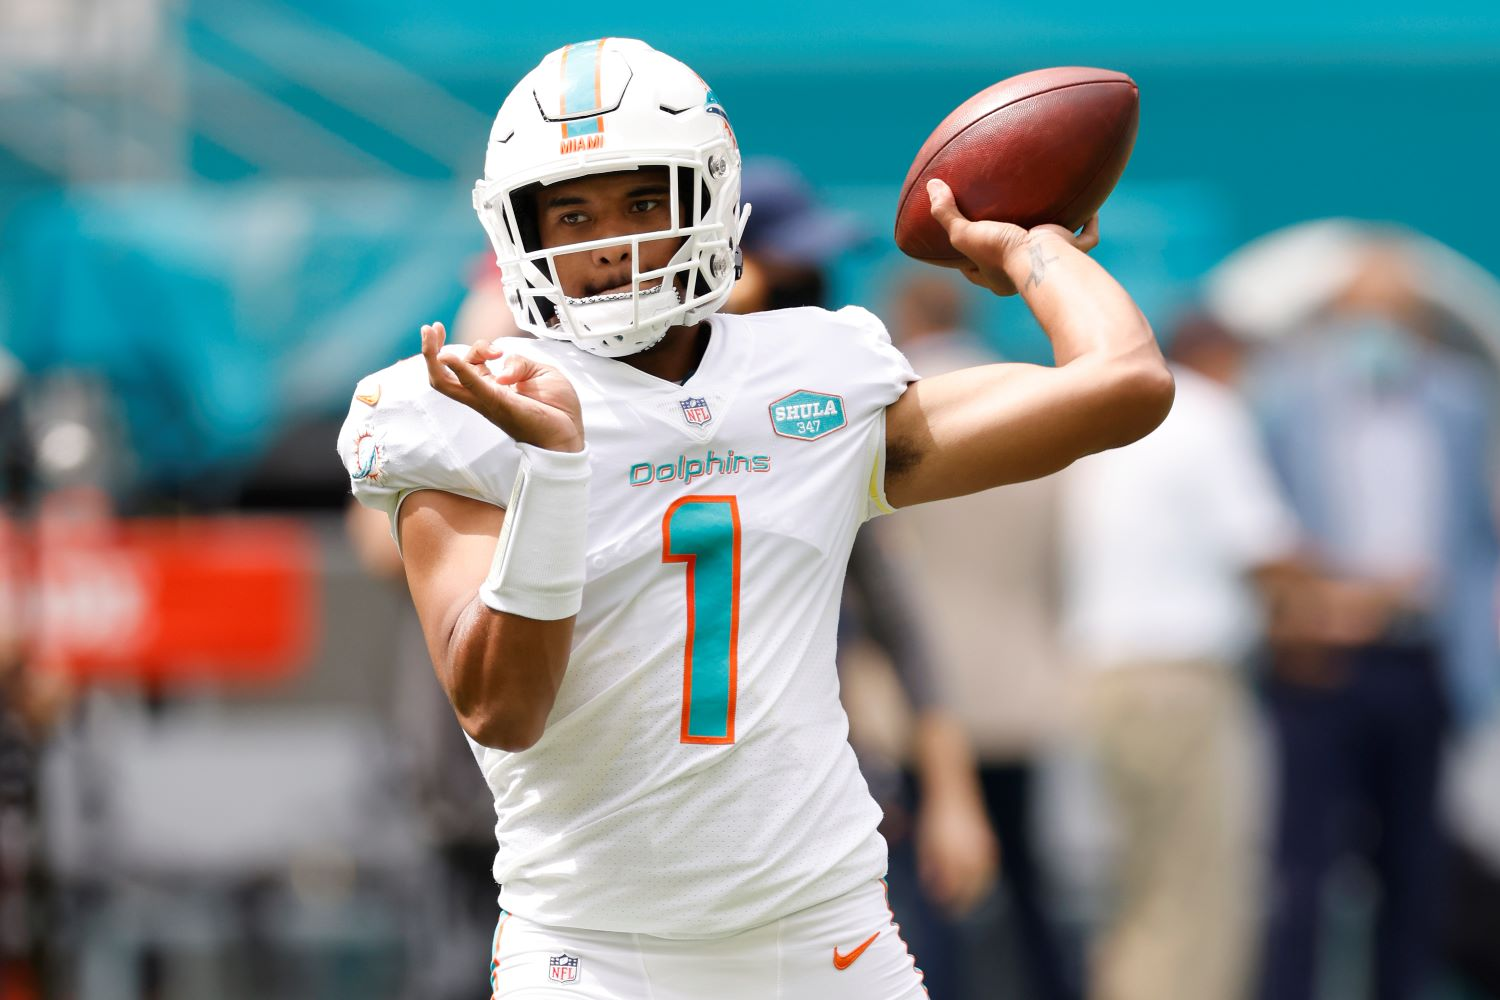 Tua Tagovailoa just changed the fate of the 2020 NFL season now that the Dolphins have named him as their new starting quarterback.